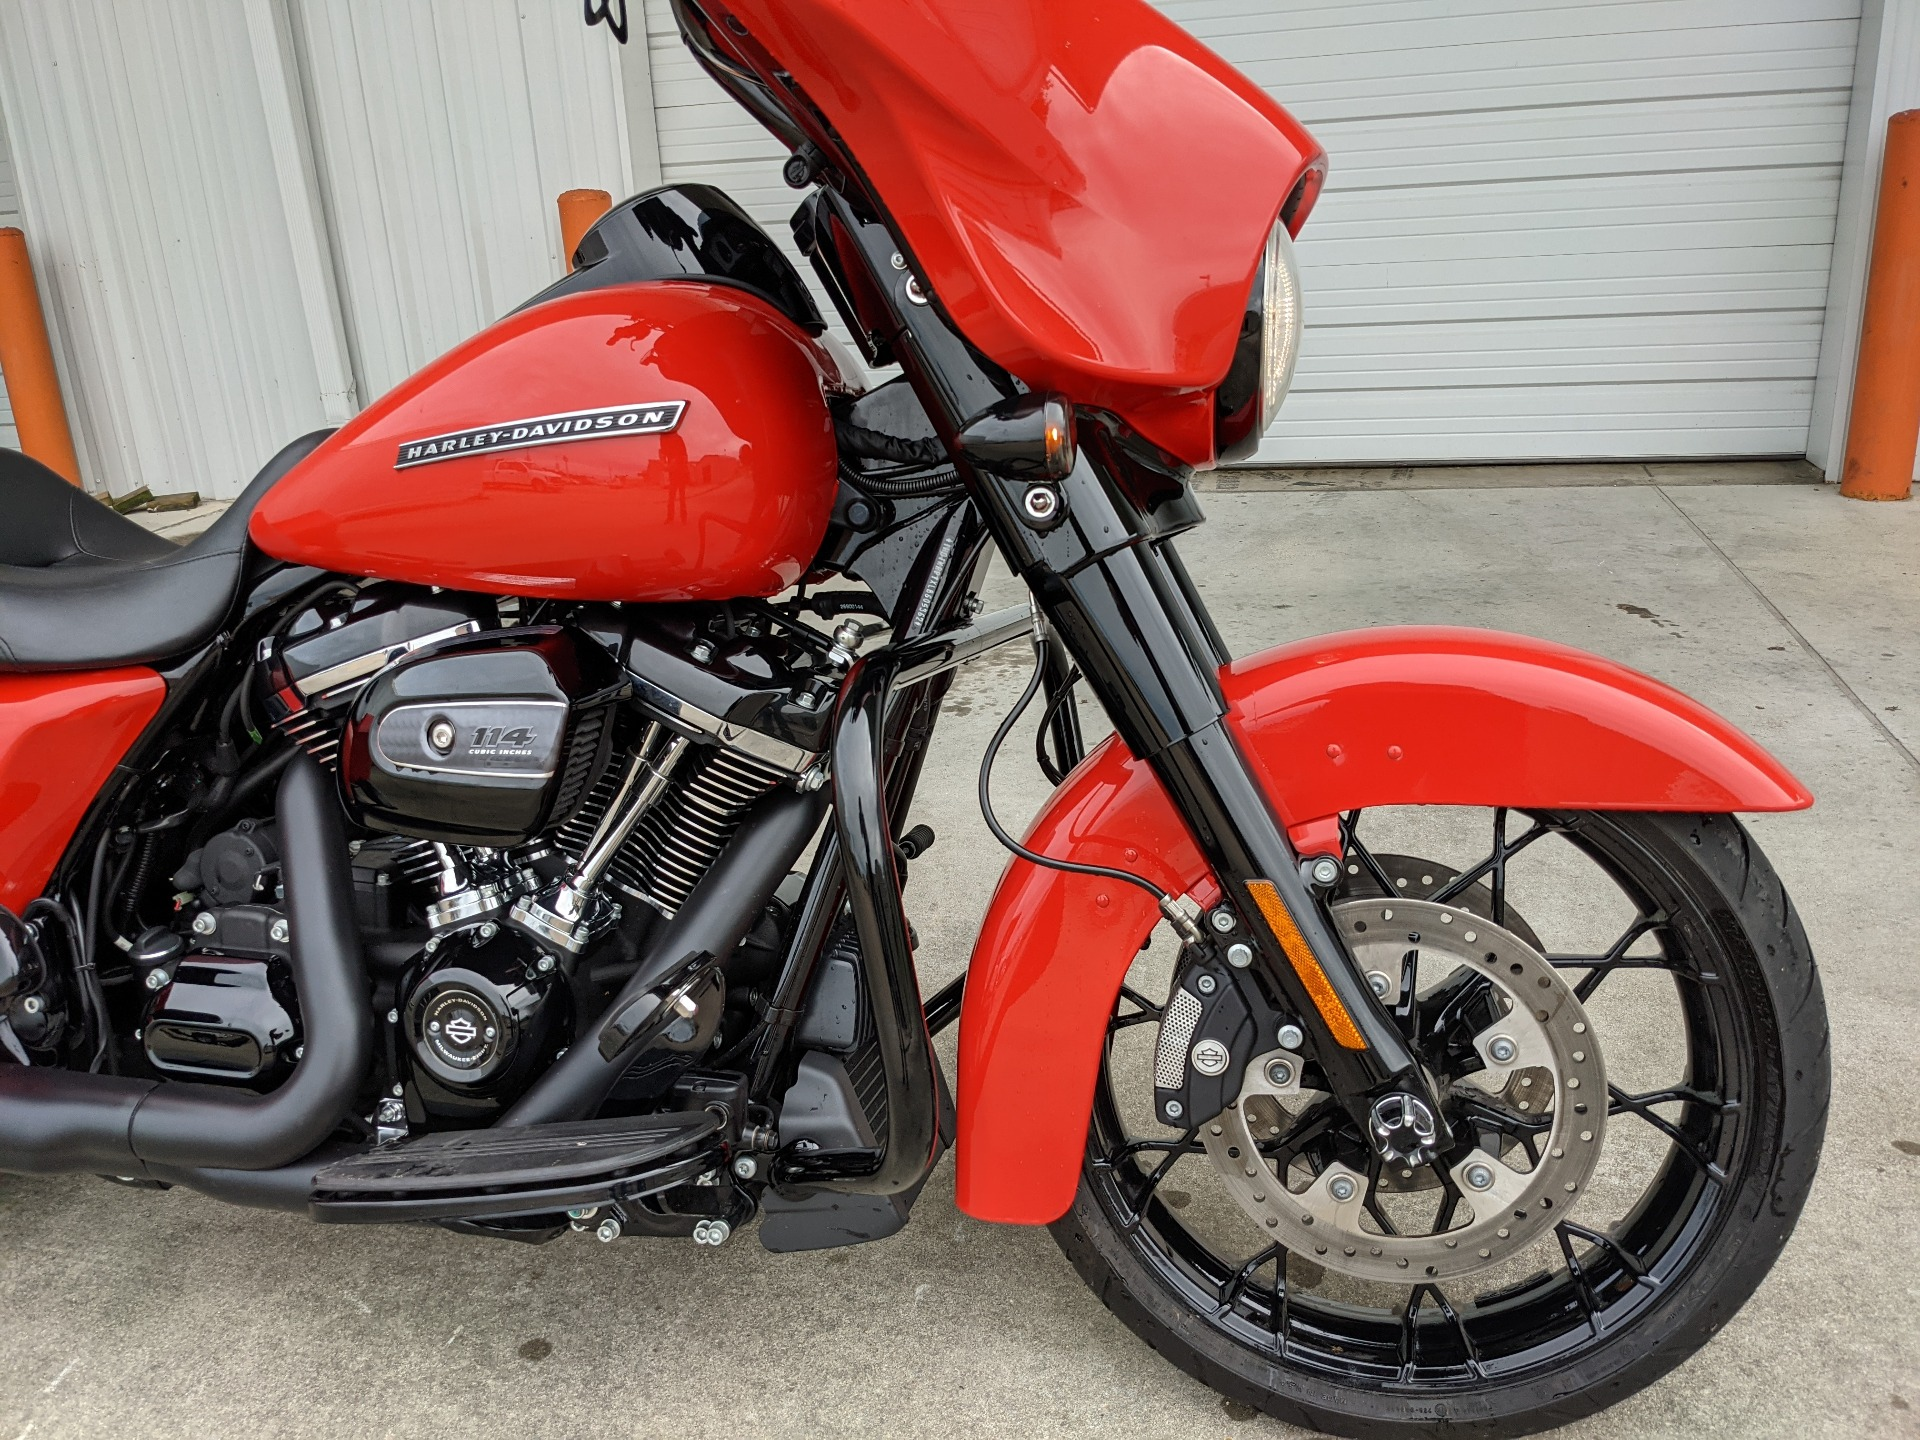 2020 Harley-Davidson Street Glide Special for sale low miles - Photo 3